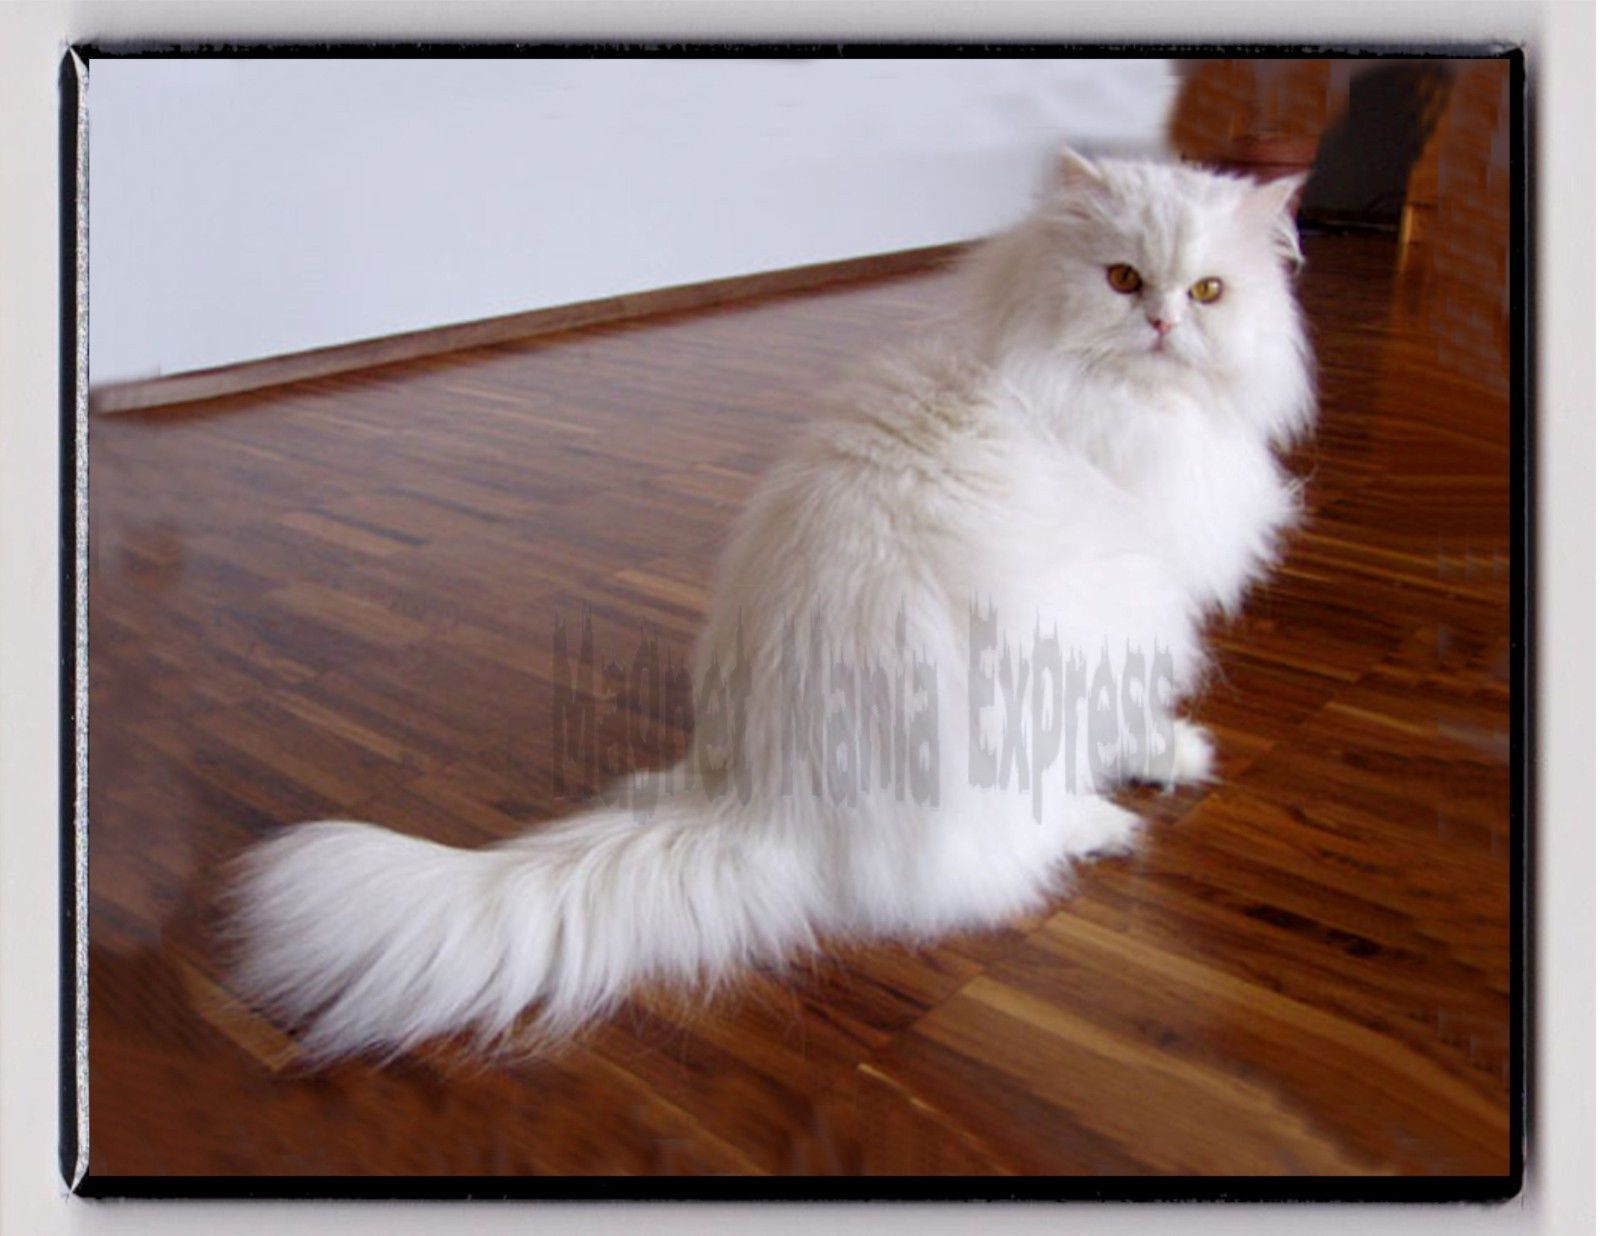 Metal Magnet White Persian Cat Wood Floor Cats Magnet X Persian Cat White Most Popular Cat Breeds Persian Cats For Sale